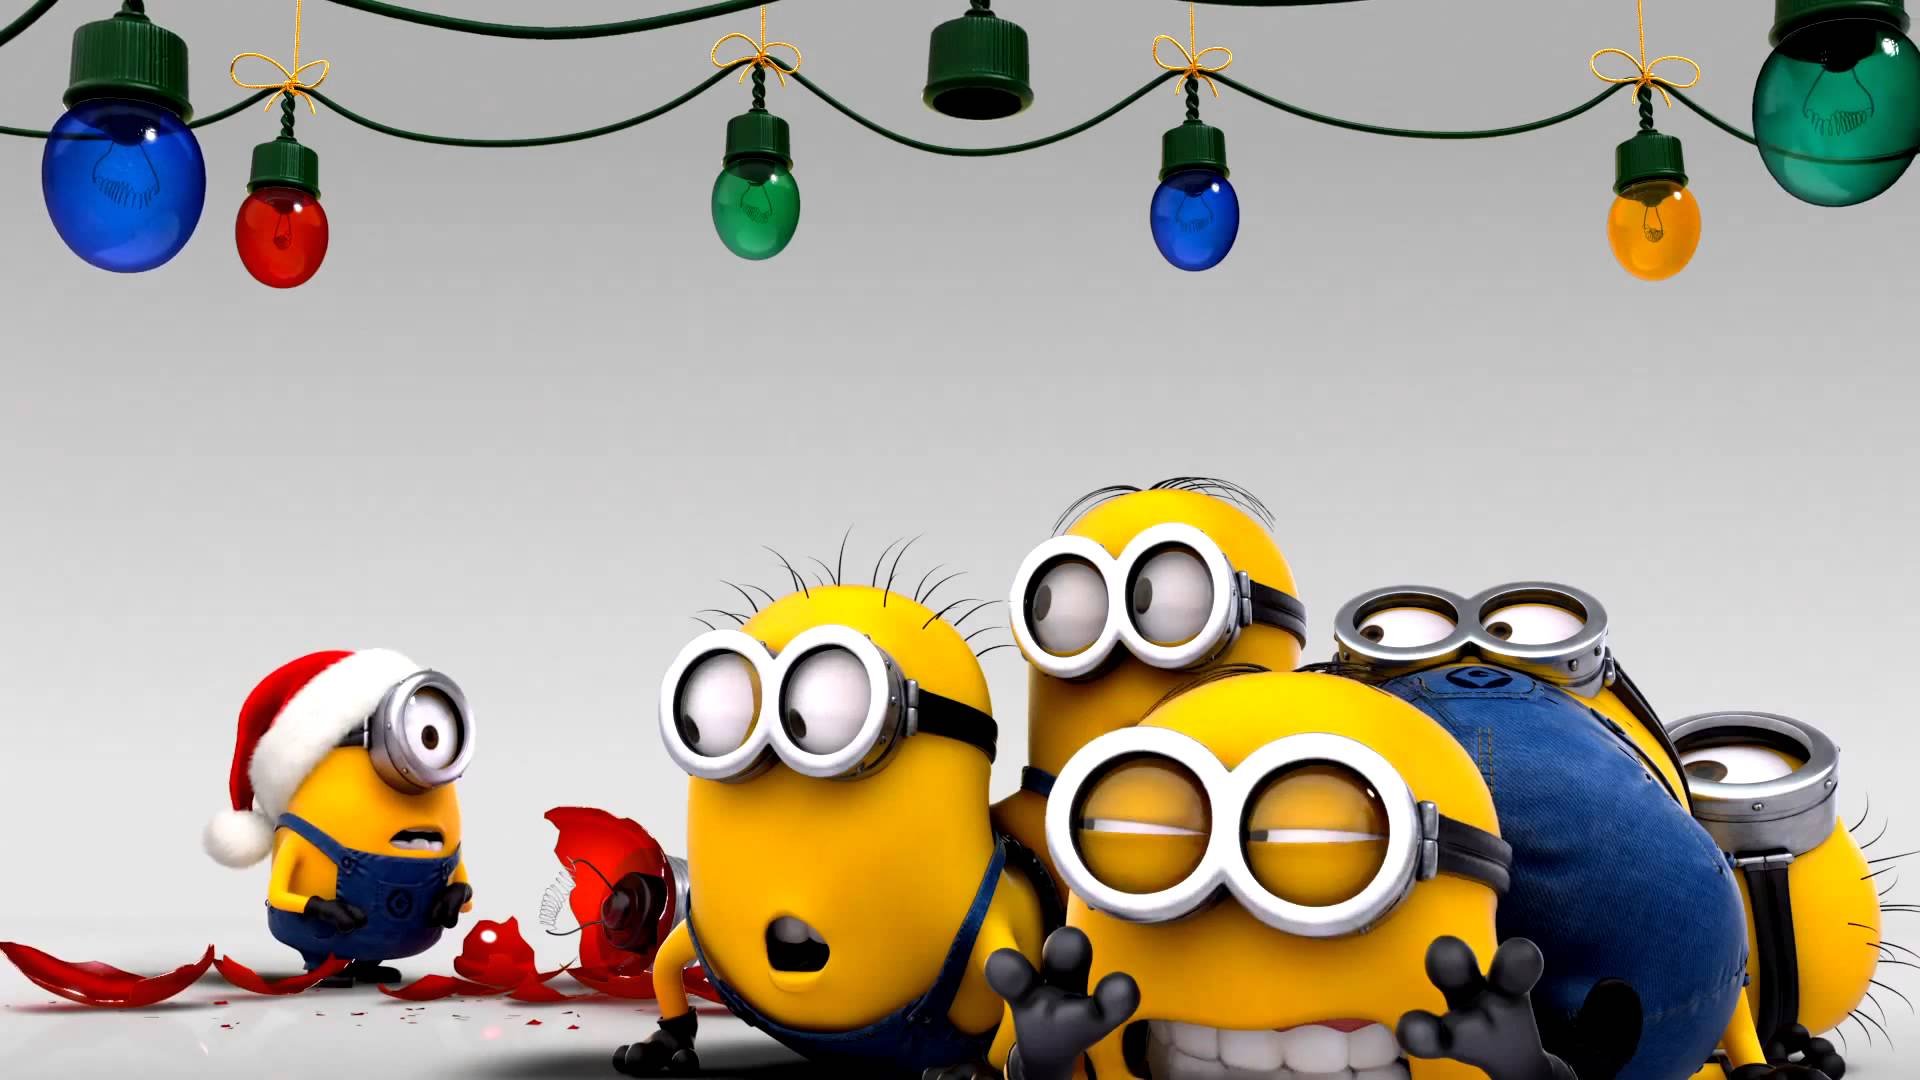 Minions-Despicable-Me-Christmas-wallpaper-wpc5807236